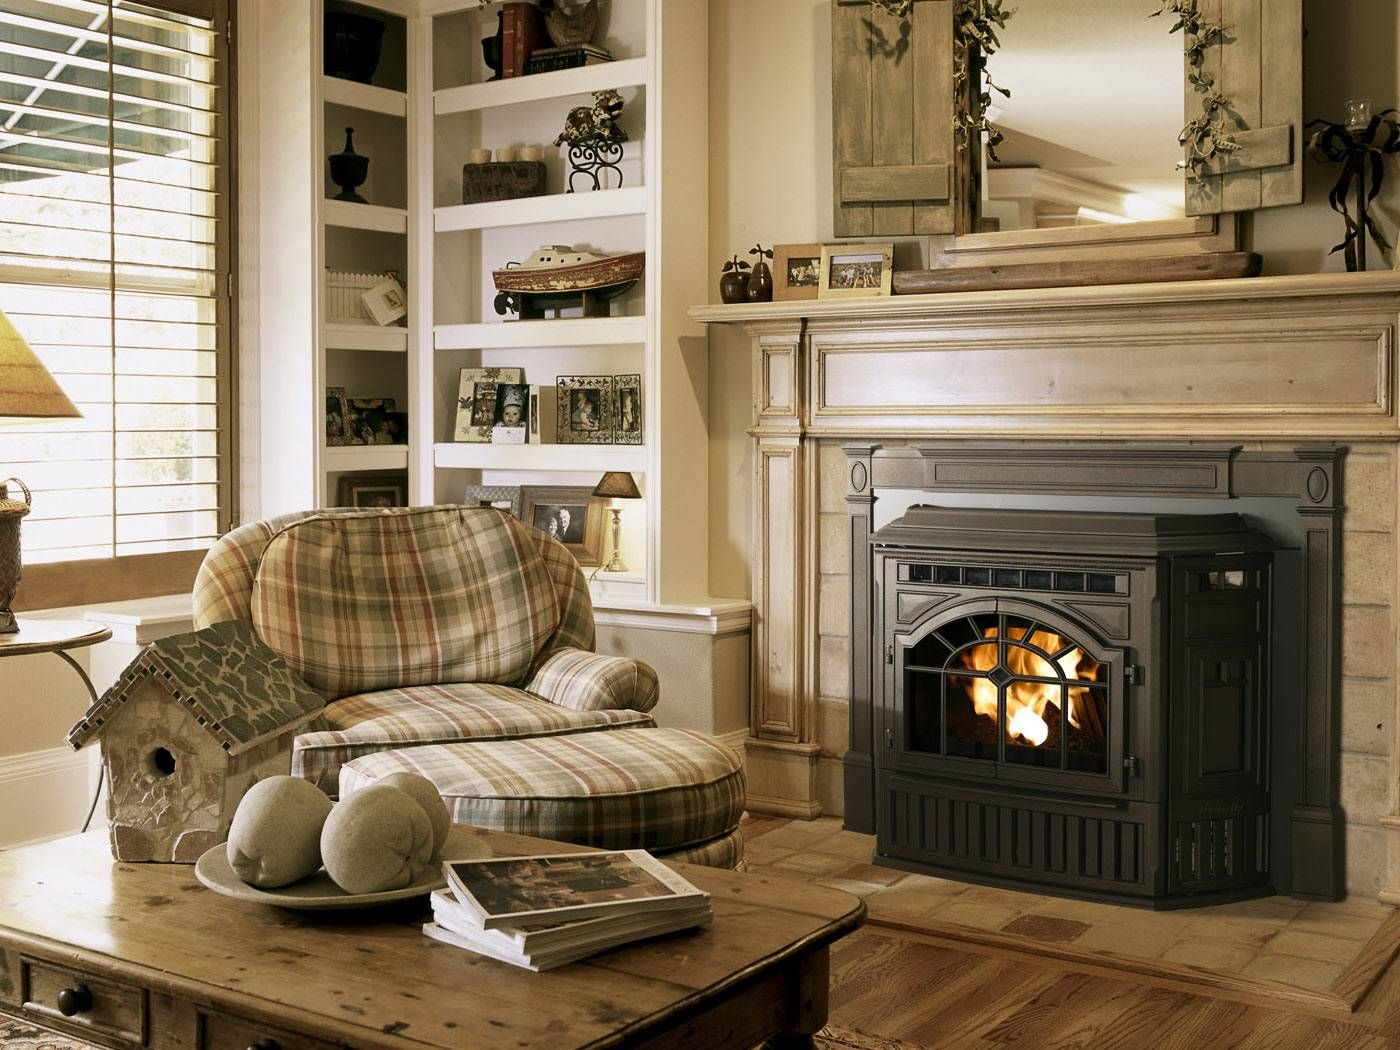 Replace The Stone With Marble And Darken The Wood U003c3. Stove FireplaceWood FireplaceFireplace  InsertsGas ...  Replace Fireplace Insert